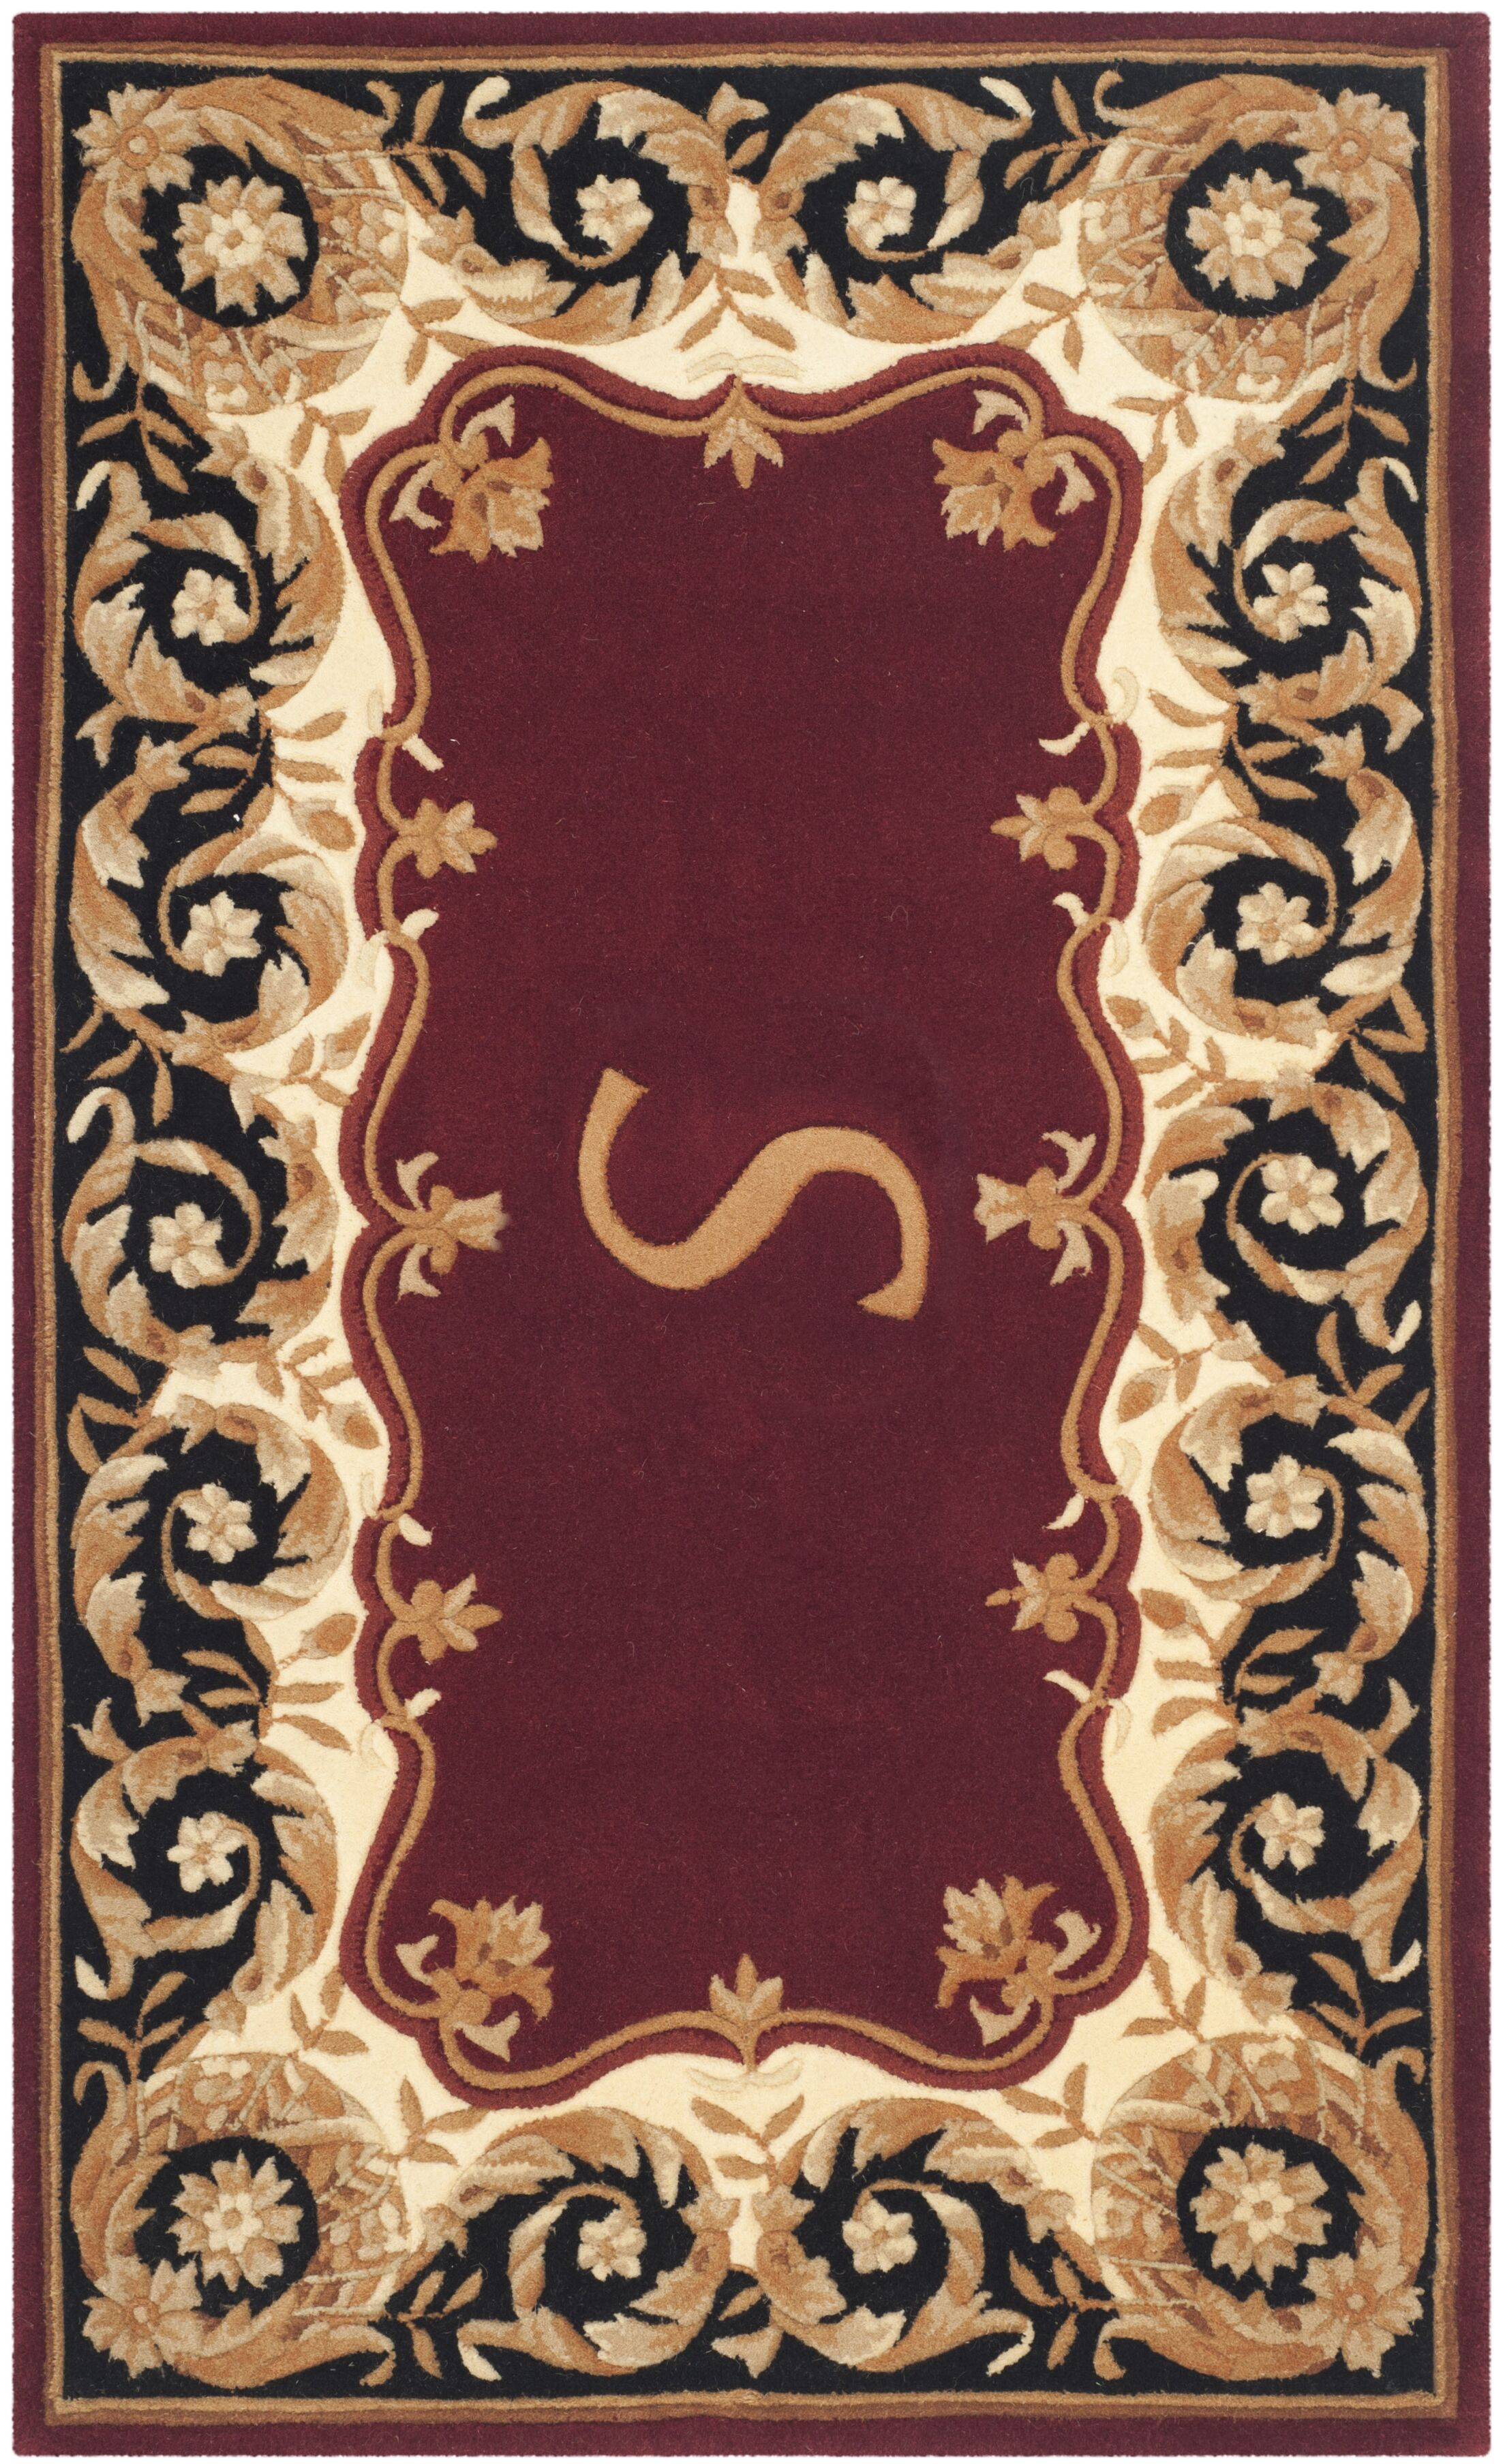 Lenora Hand Tufted Wool Maroon Area Rug  Rug Size: Rectangle 3' x 5', Letter: J